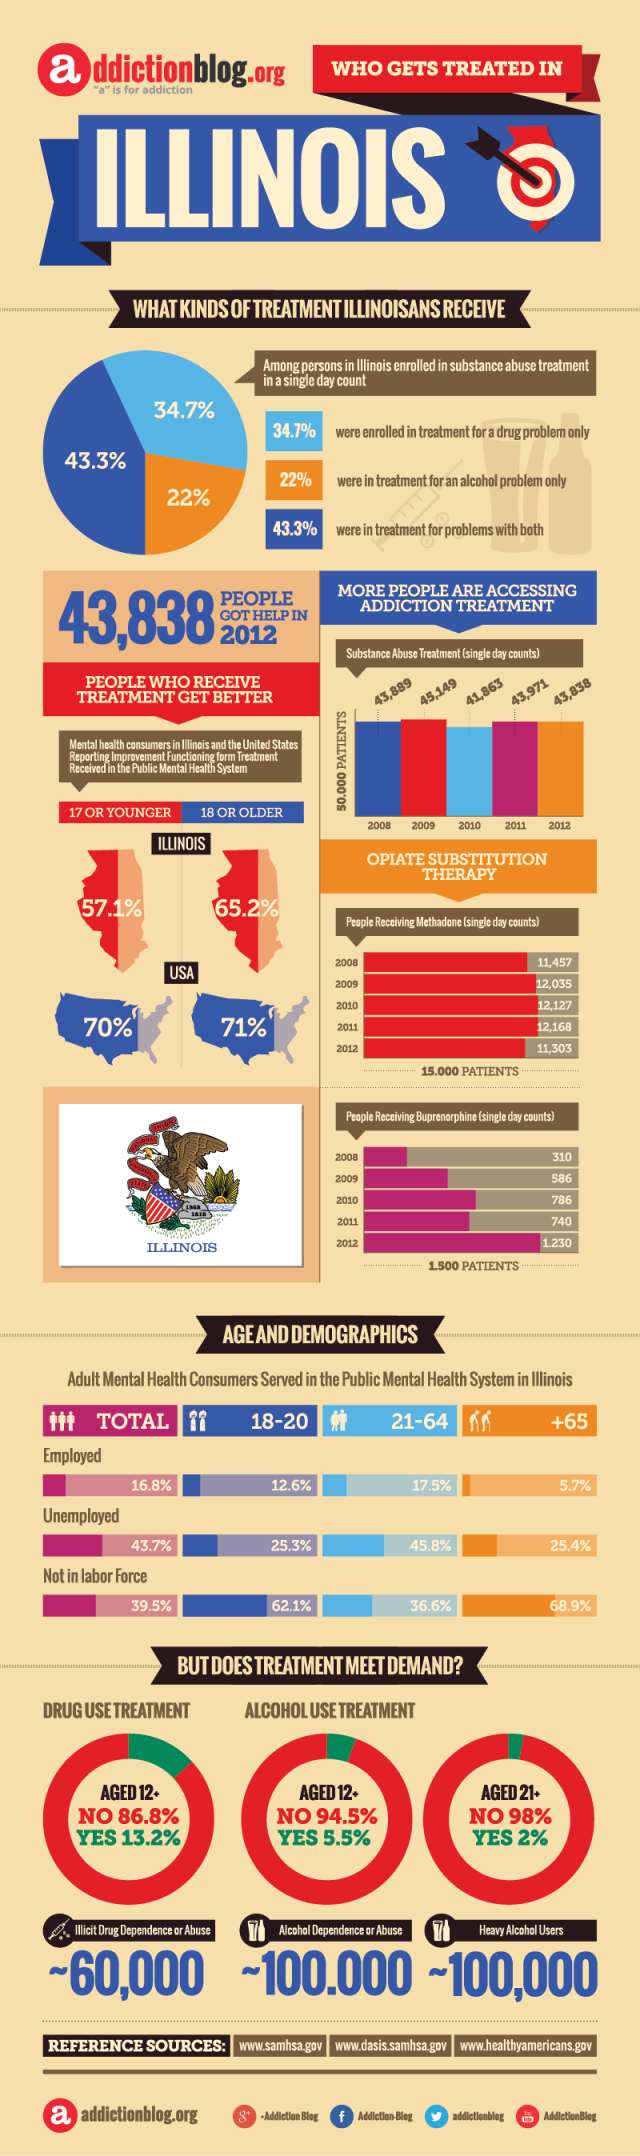 Drug & alcohol treatment centers in Illinois: Who's being treated? (INFOGRAPHIC)